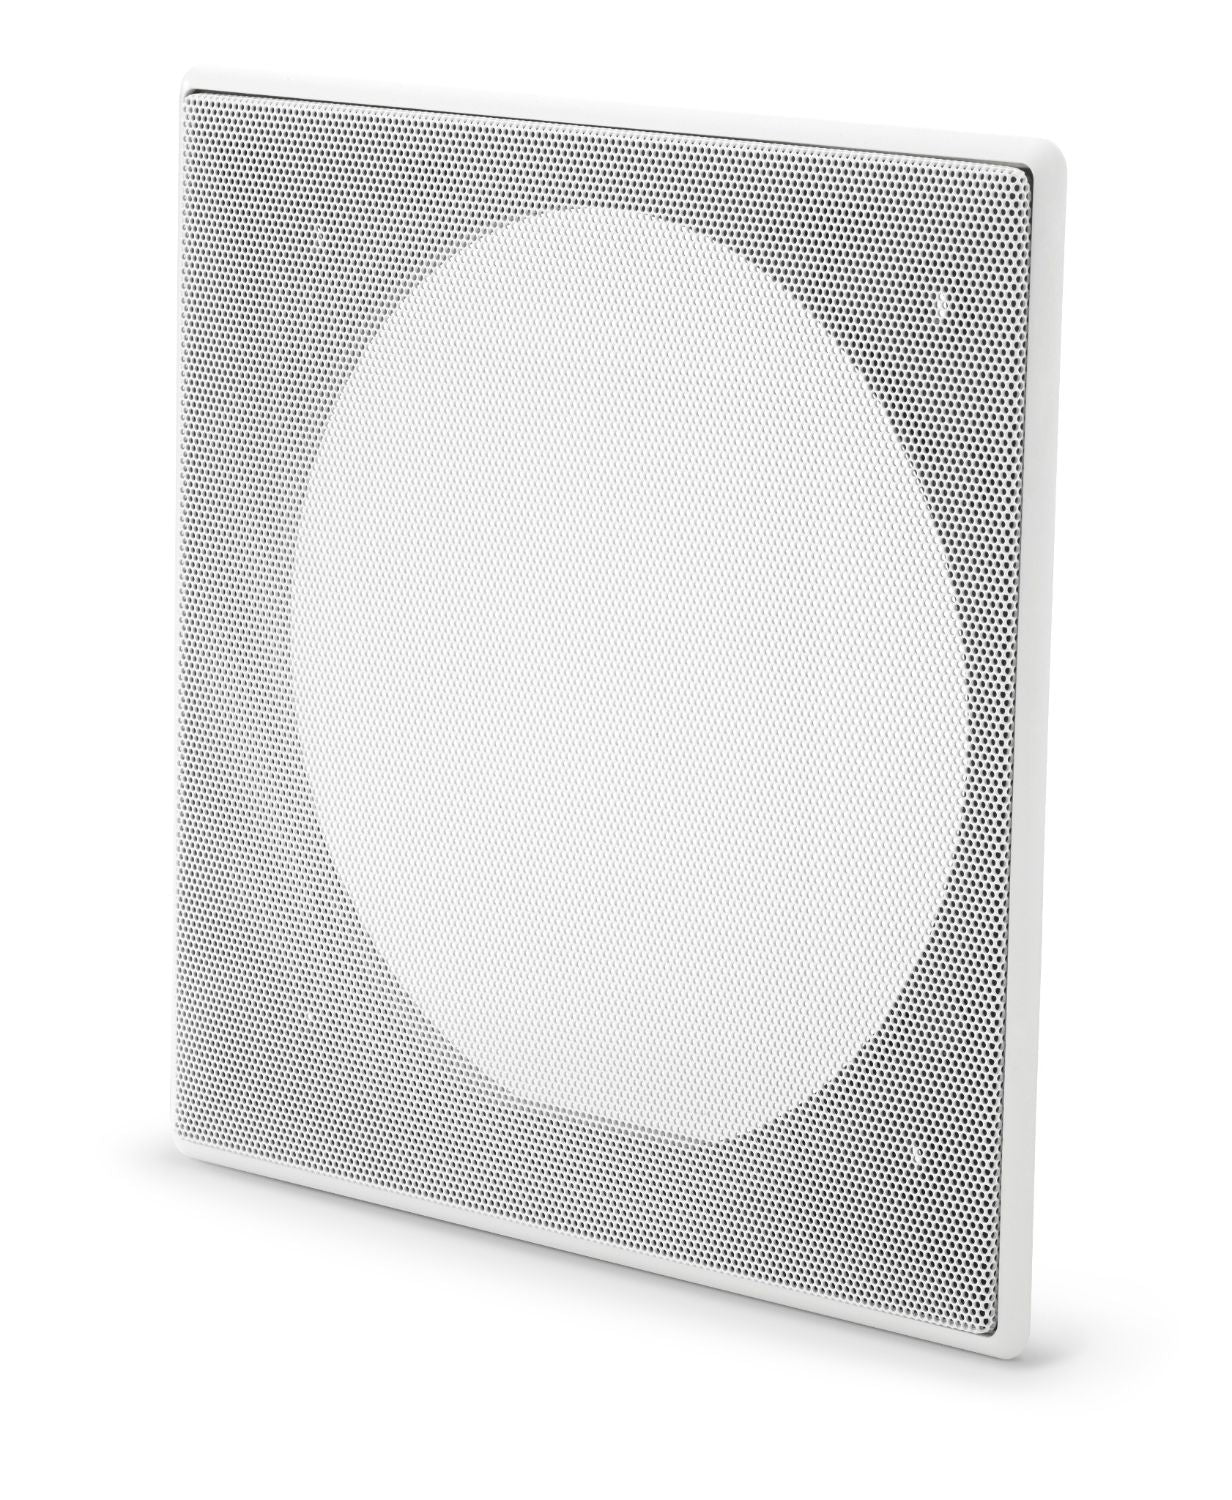 Front of IWG-108 In-Wall Grille Facing Left